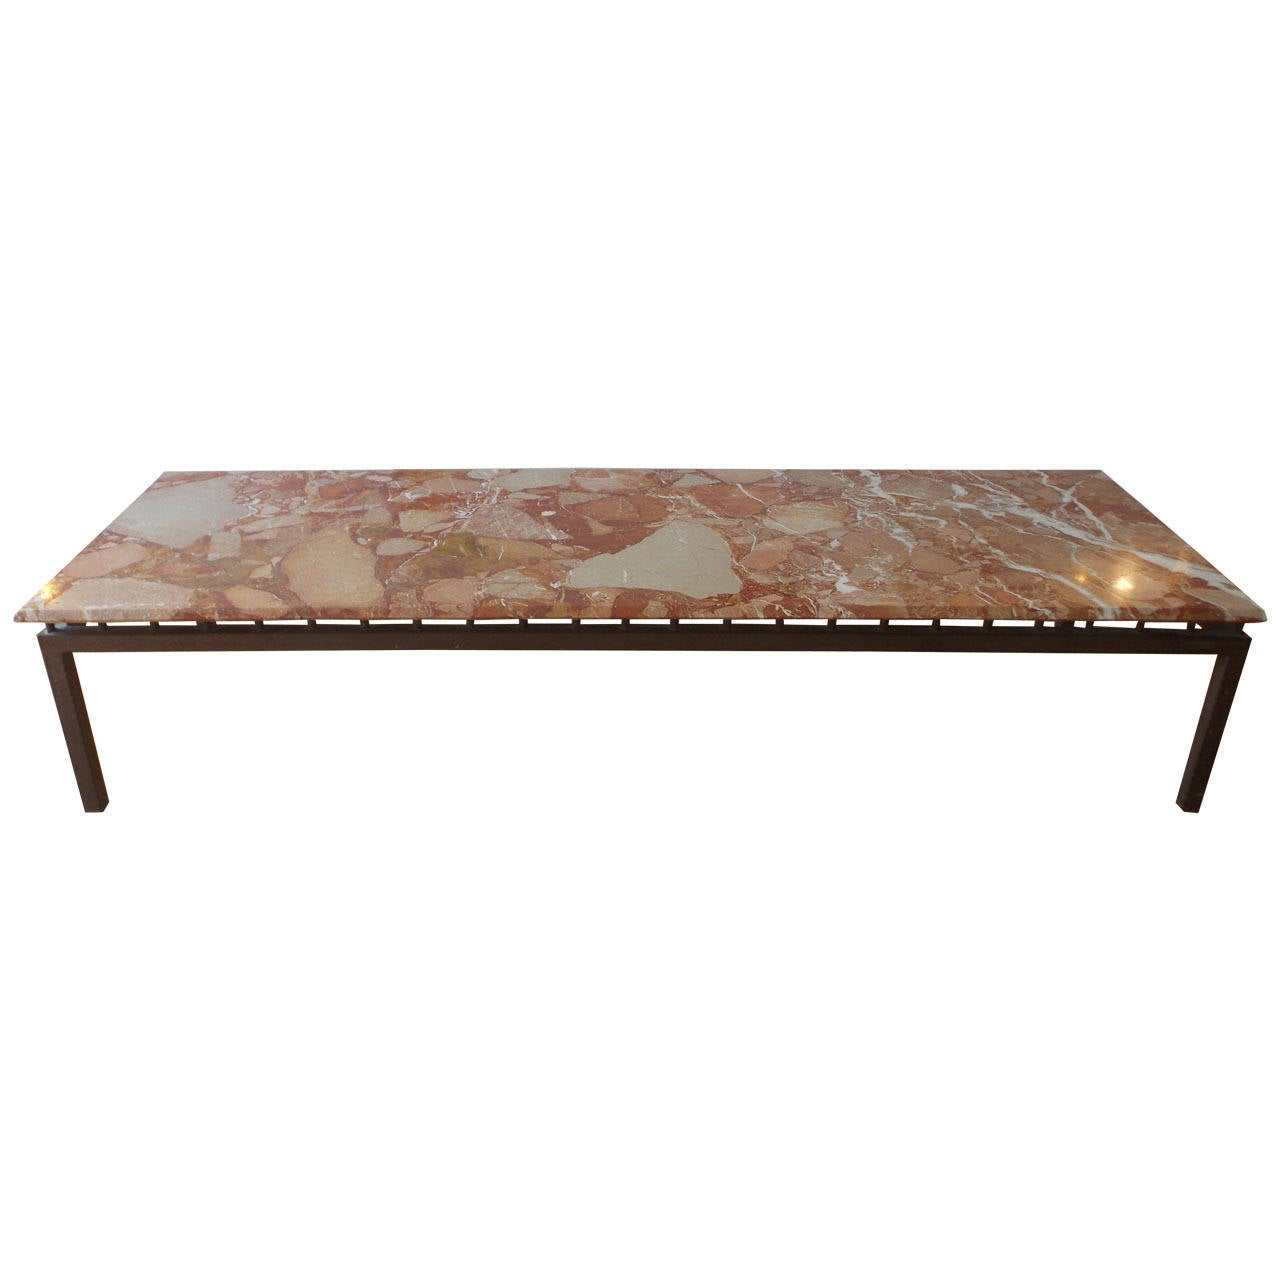 Vintage Marble Coffee Table As Seen In William Haines 39 Own Home Interior At 1stdibs